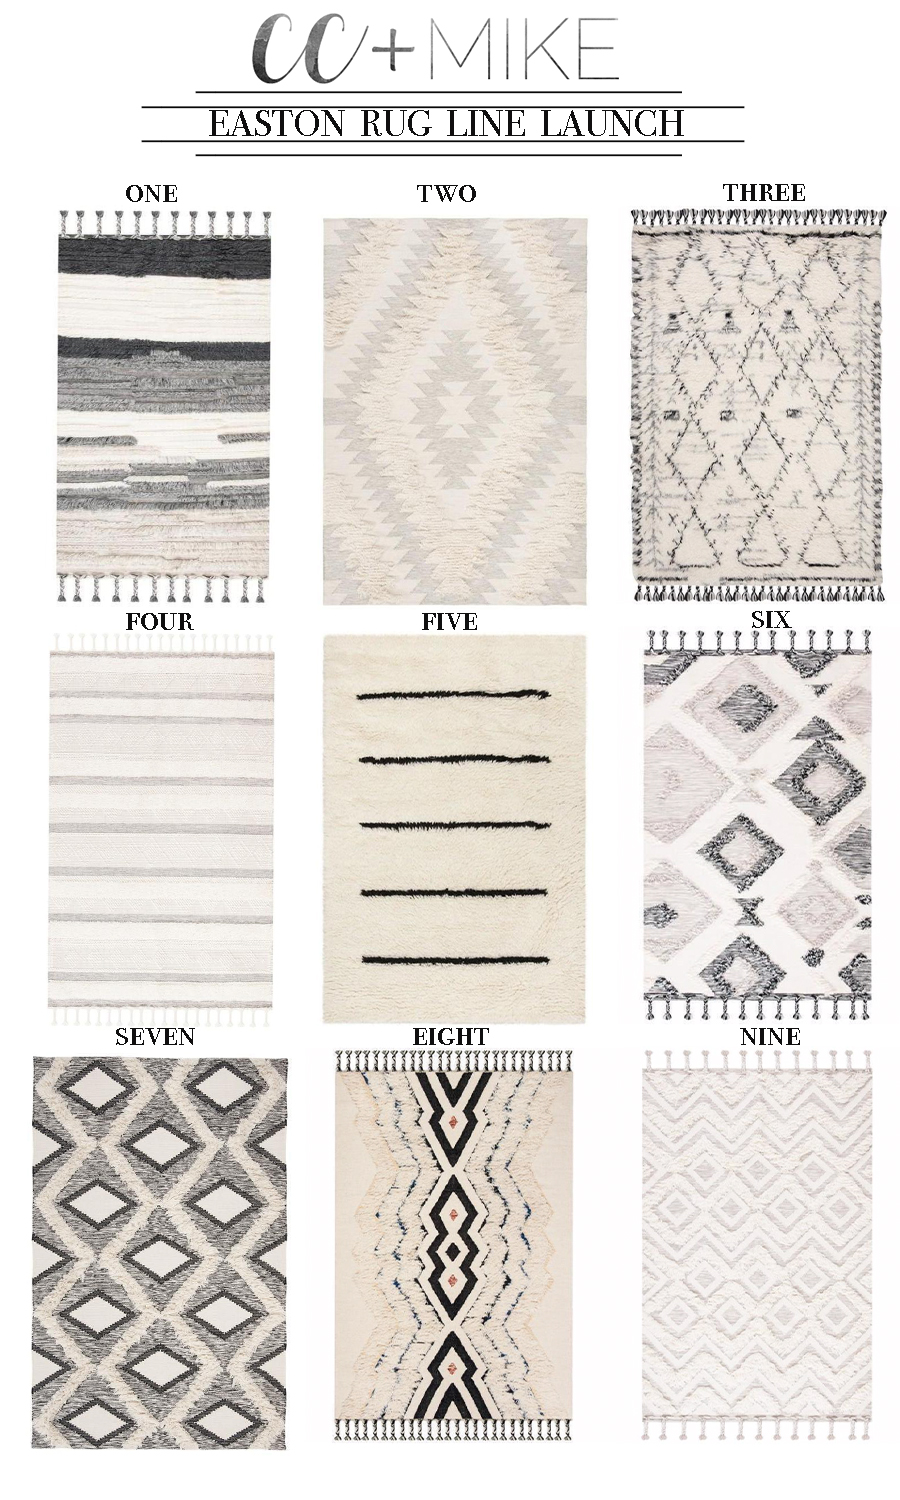 5 Tips for Boys Bedroom Design easton rug line launch cc and mike plush cozy black and white aztec and stripe rugs with tassels